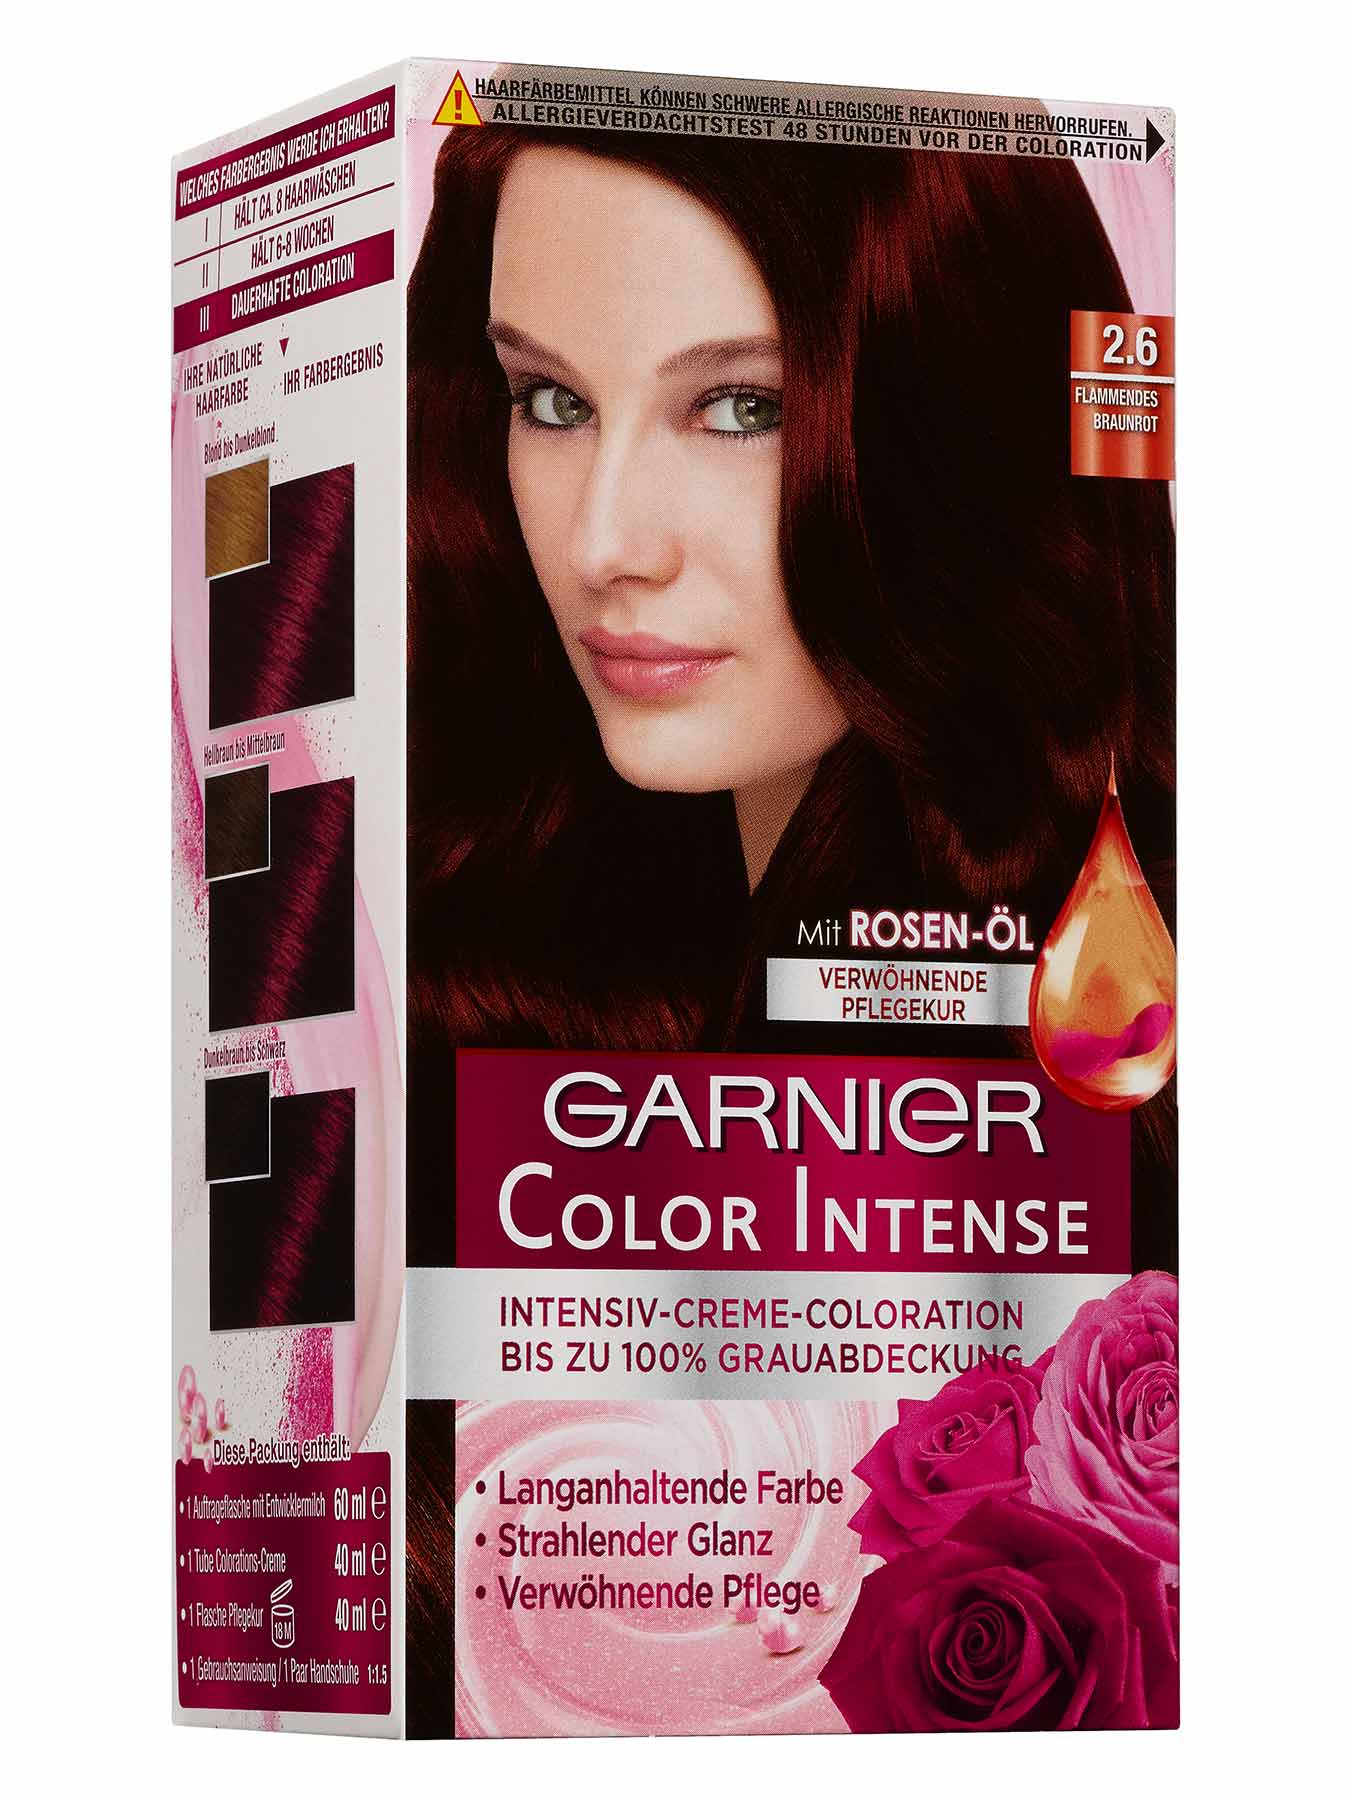 2-6-Flammendes-Braunrot-Intensiv-Creme-Coloration-Color-Intense-1Stk-Vorderseite-Garnier-DE-gr